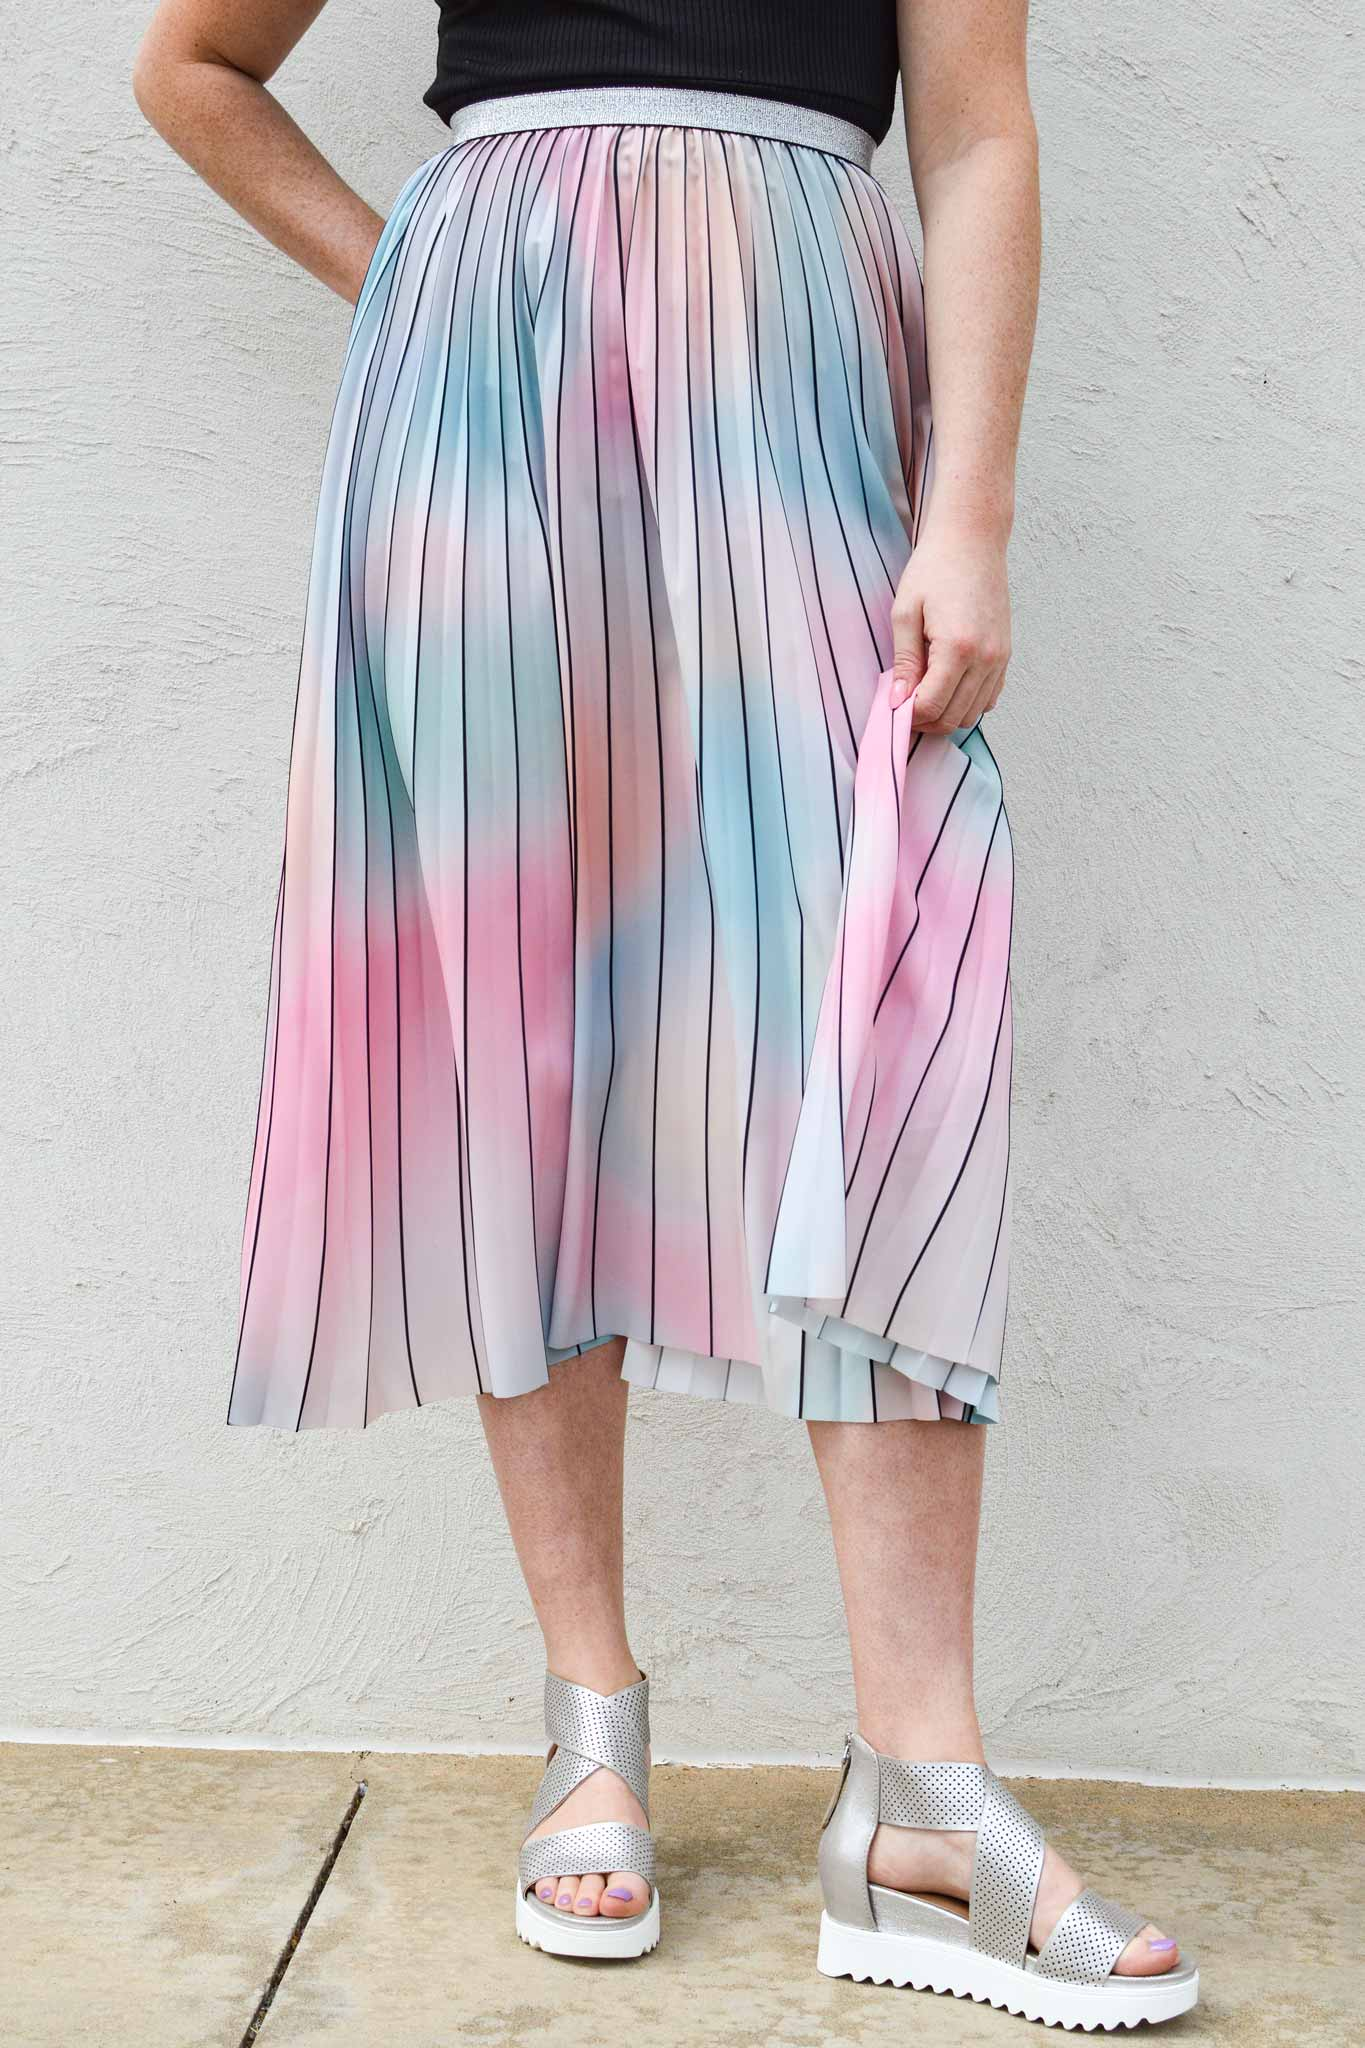 Cotton Candy Midi